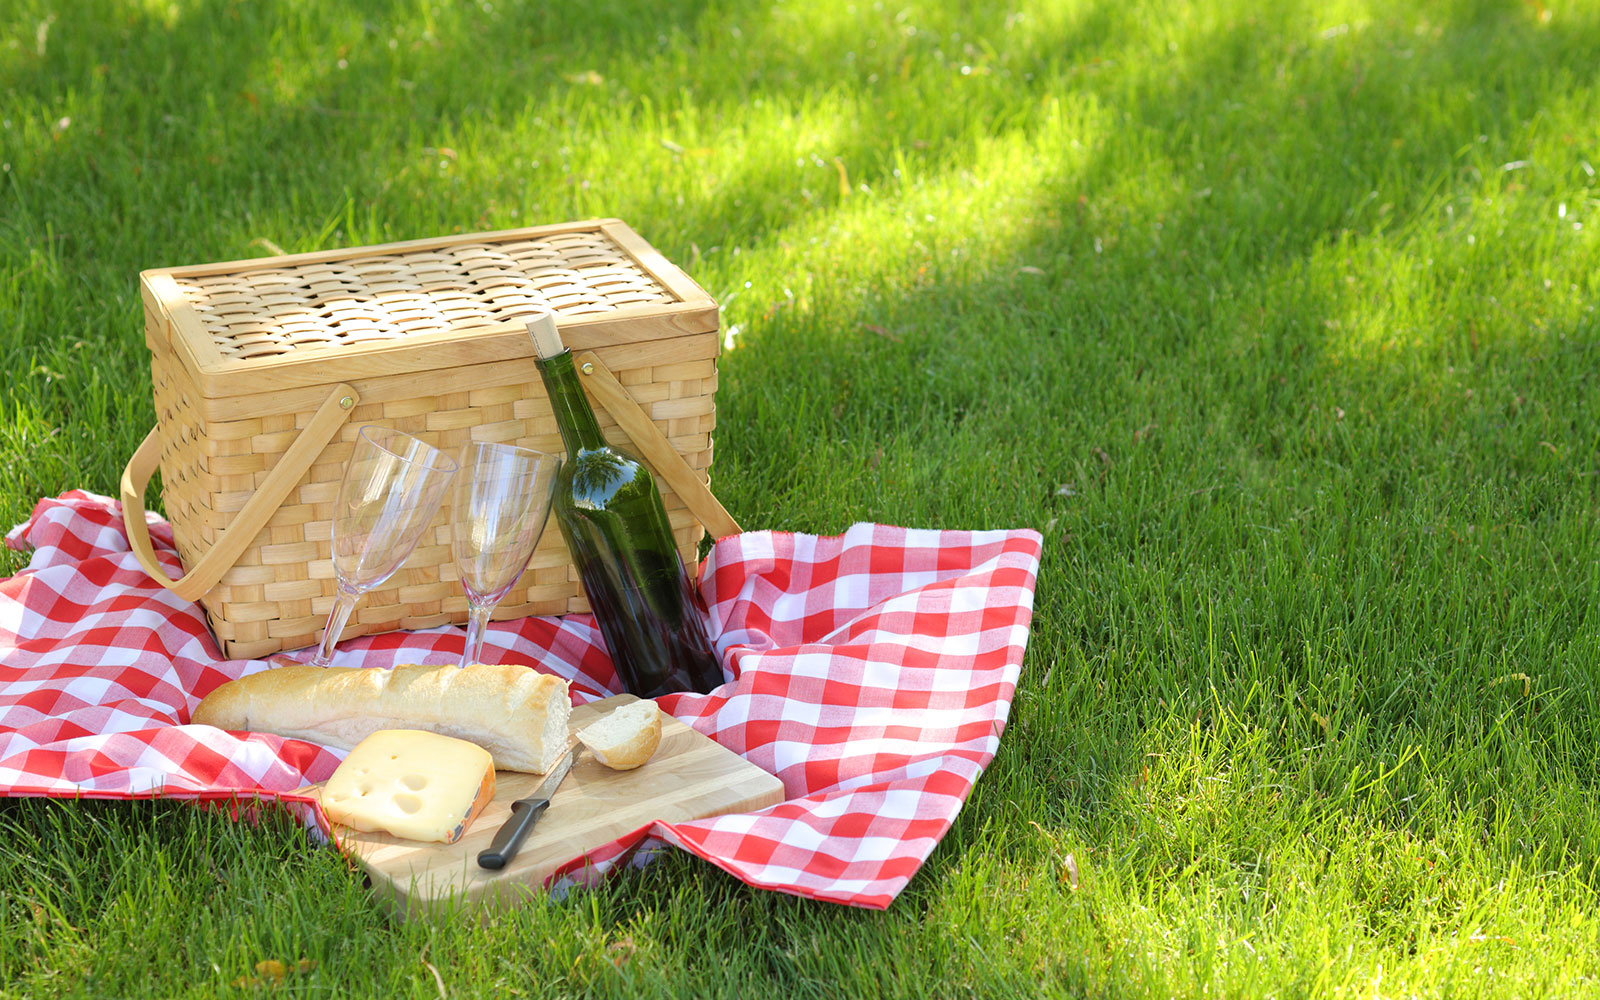 How To Pack a Fail-Proof Picnic